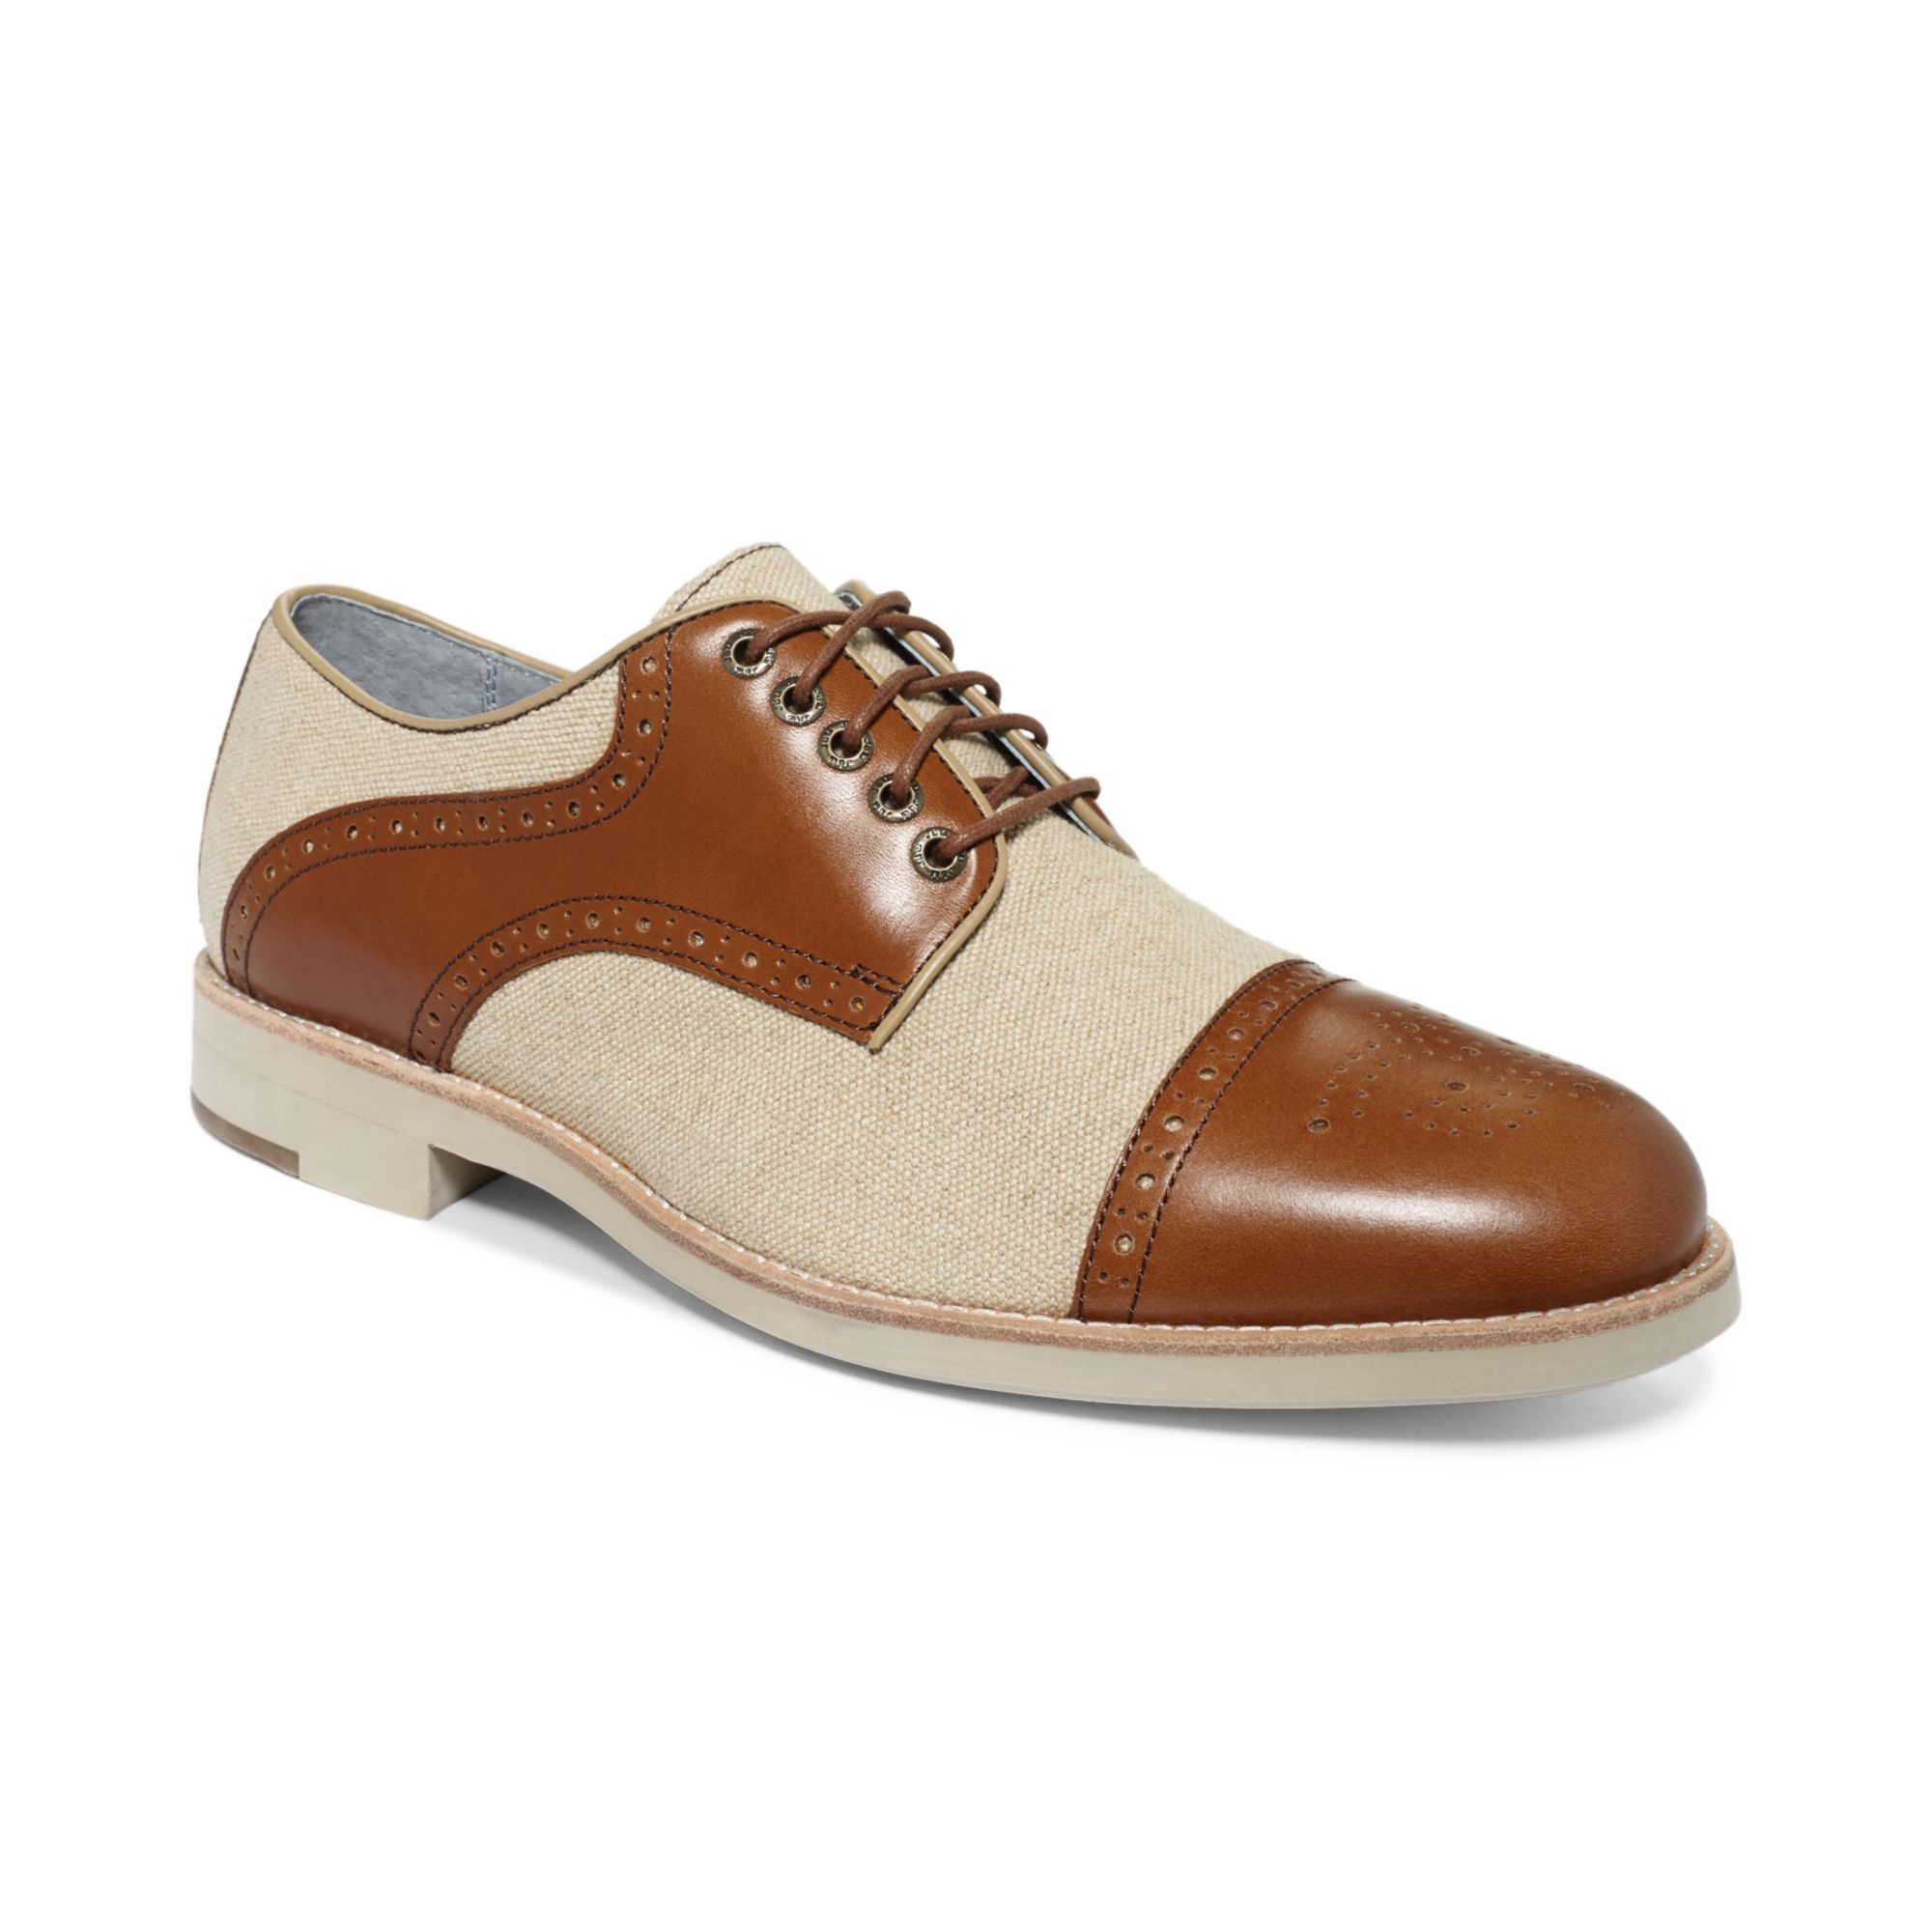 Mens Guide To Saddle Shoes